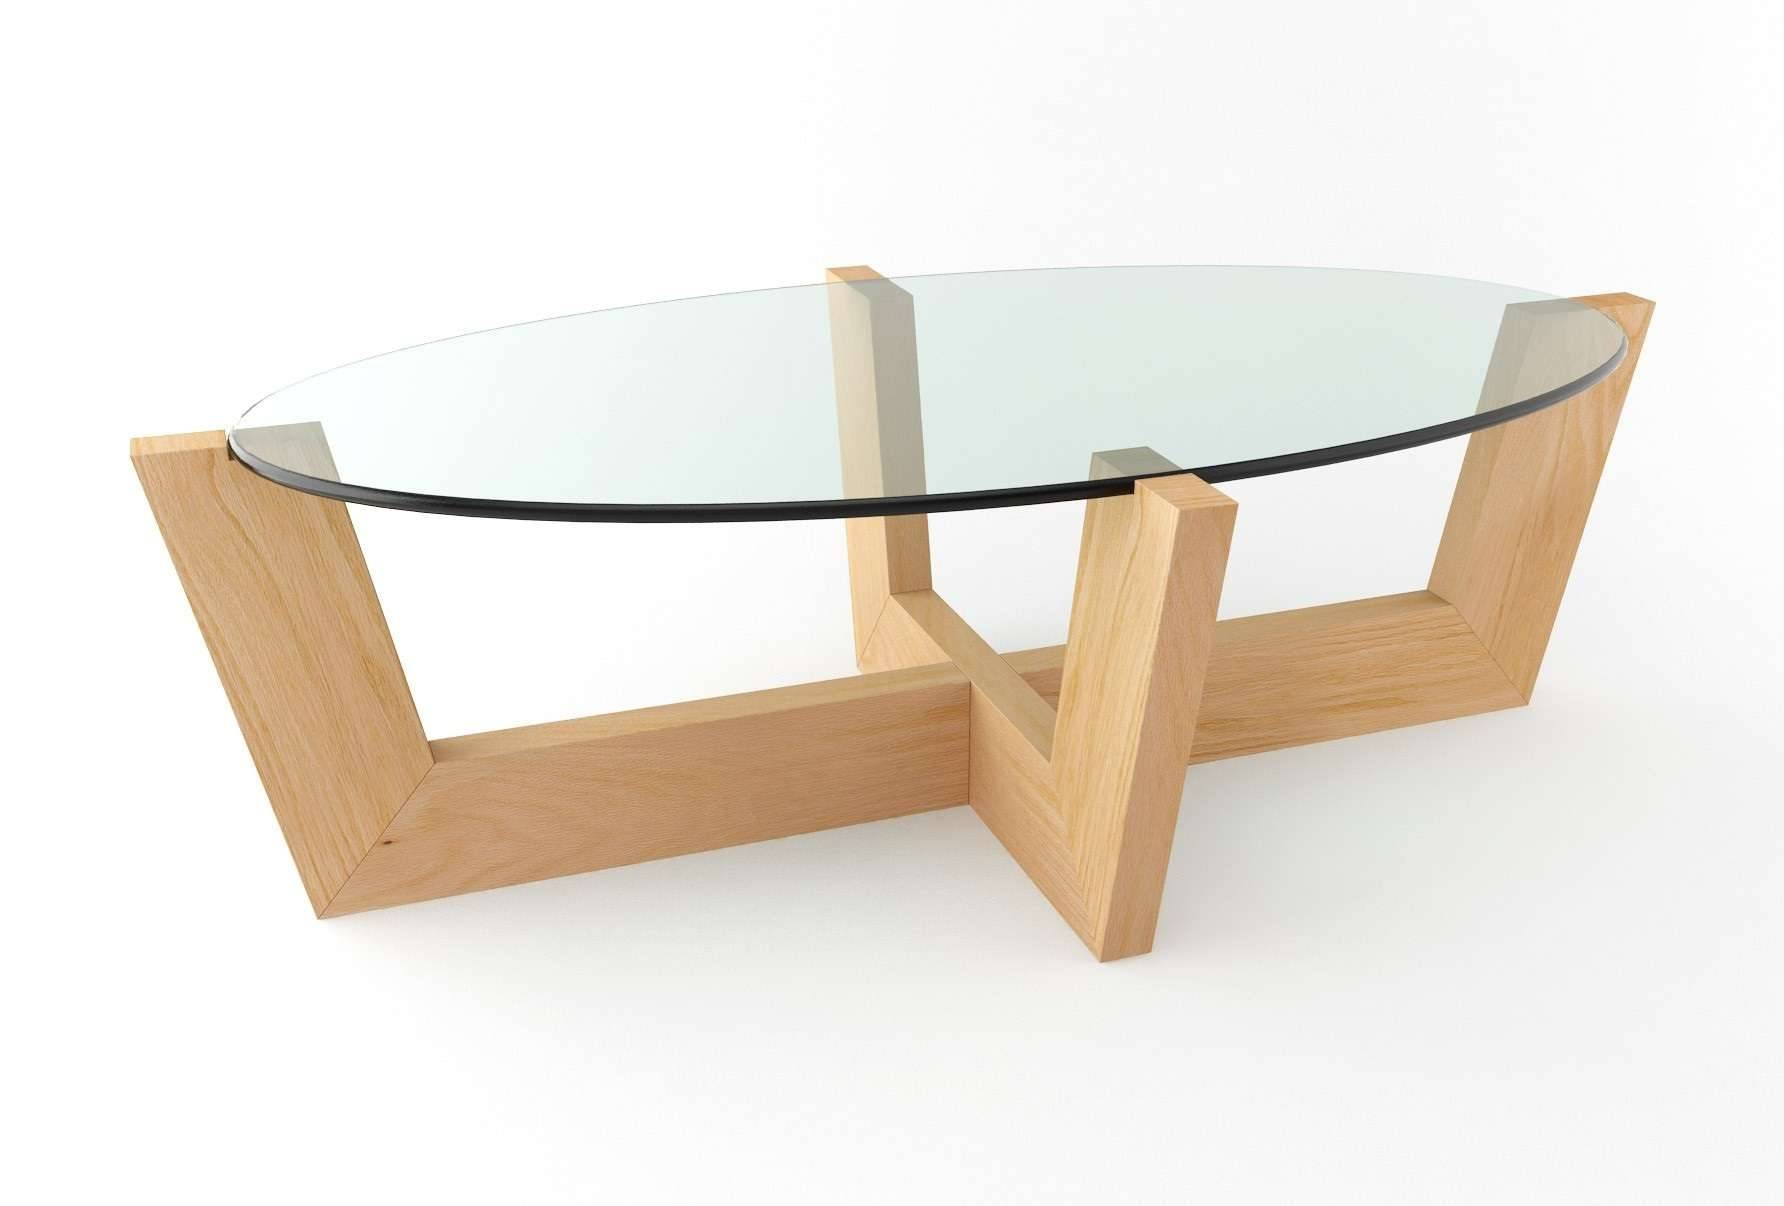 Preferred Wooden And Glass Coffee Tables Intended For Coffee Table : Marvelous Modern Coffee Table Sets Dark Wood Coffee (View 11 of 20)